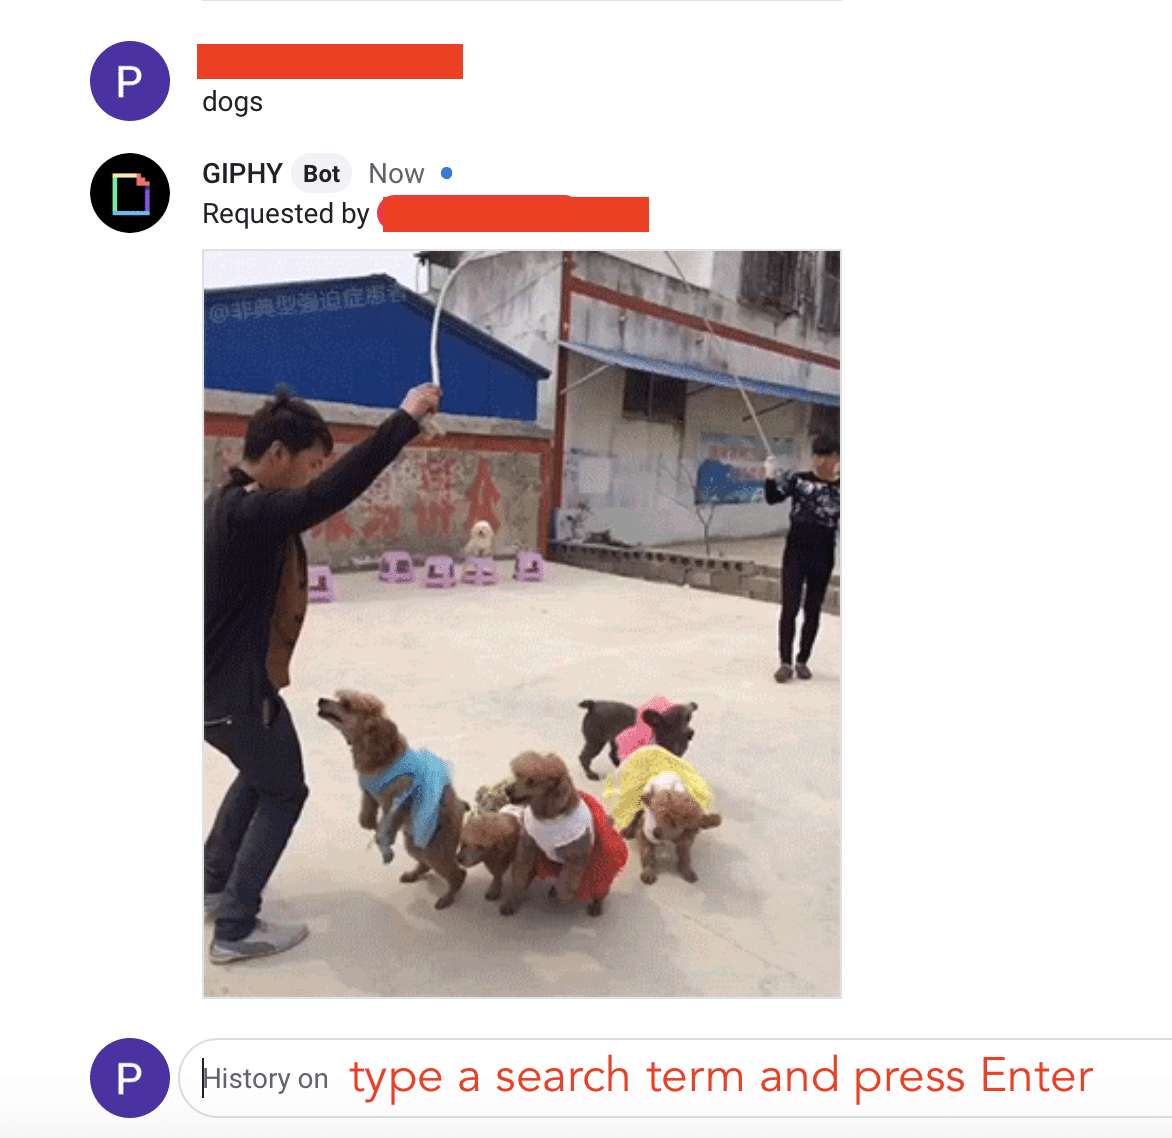 How to send GIFs on Google Chat